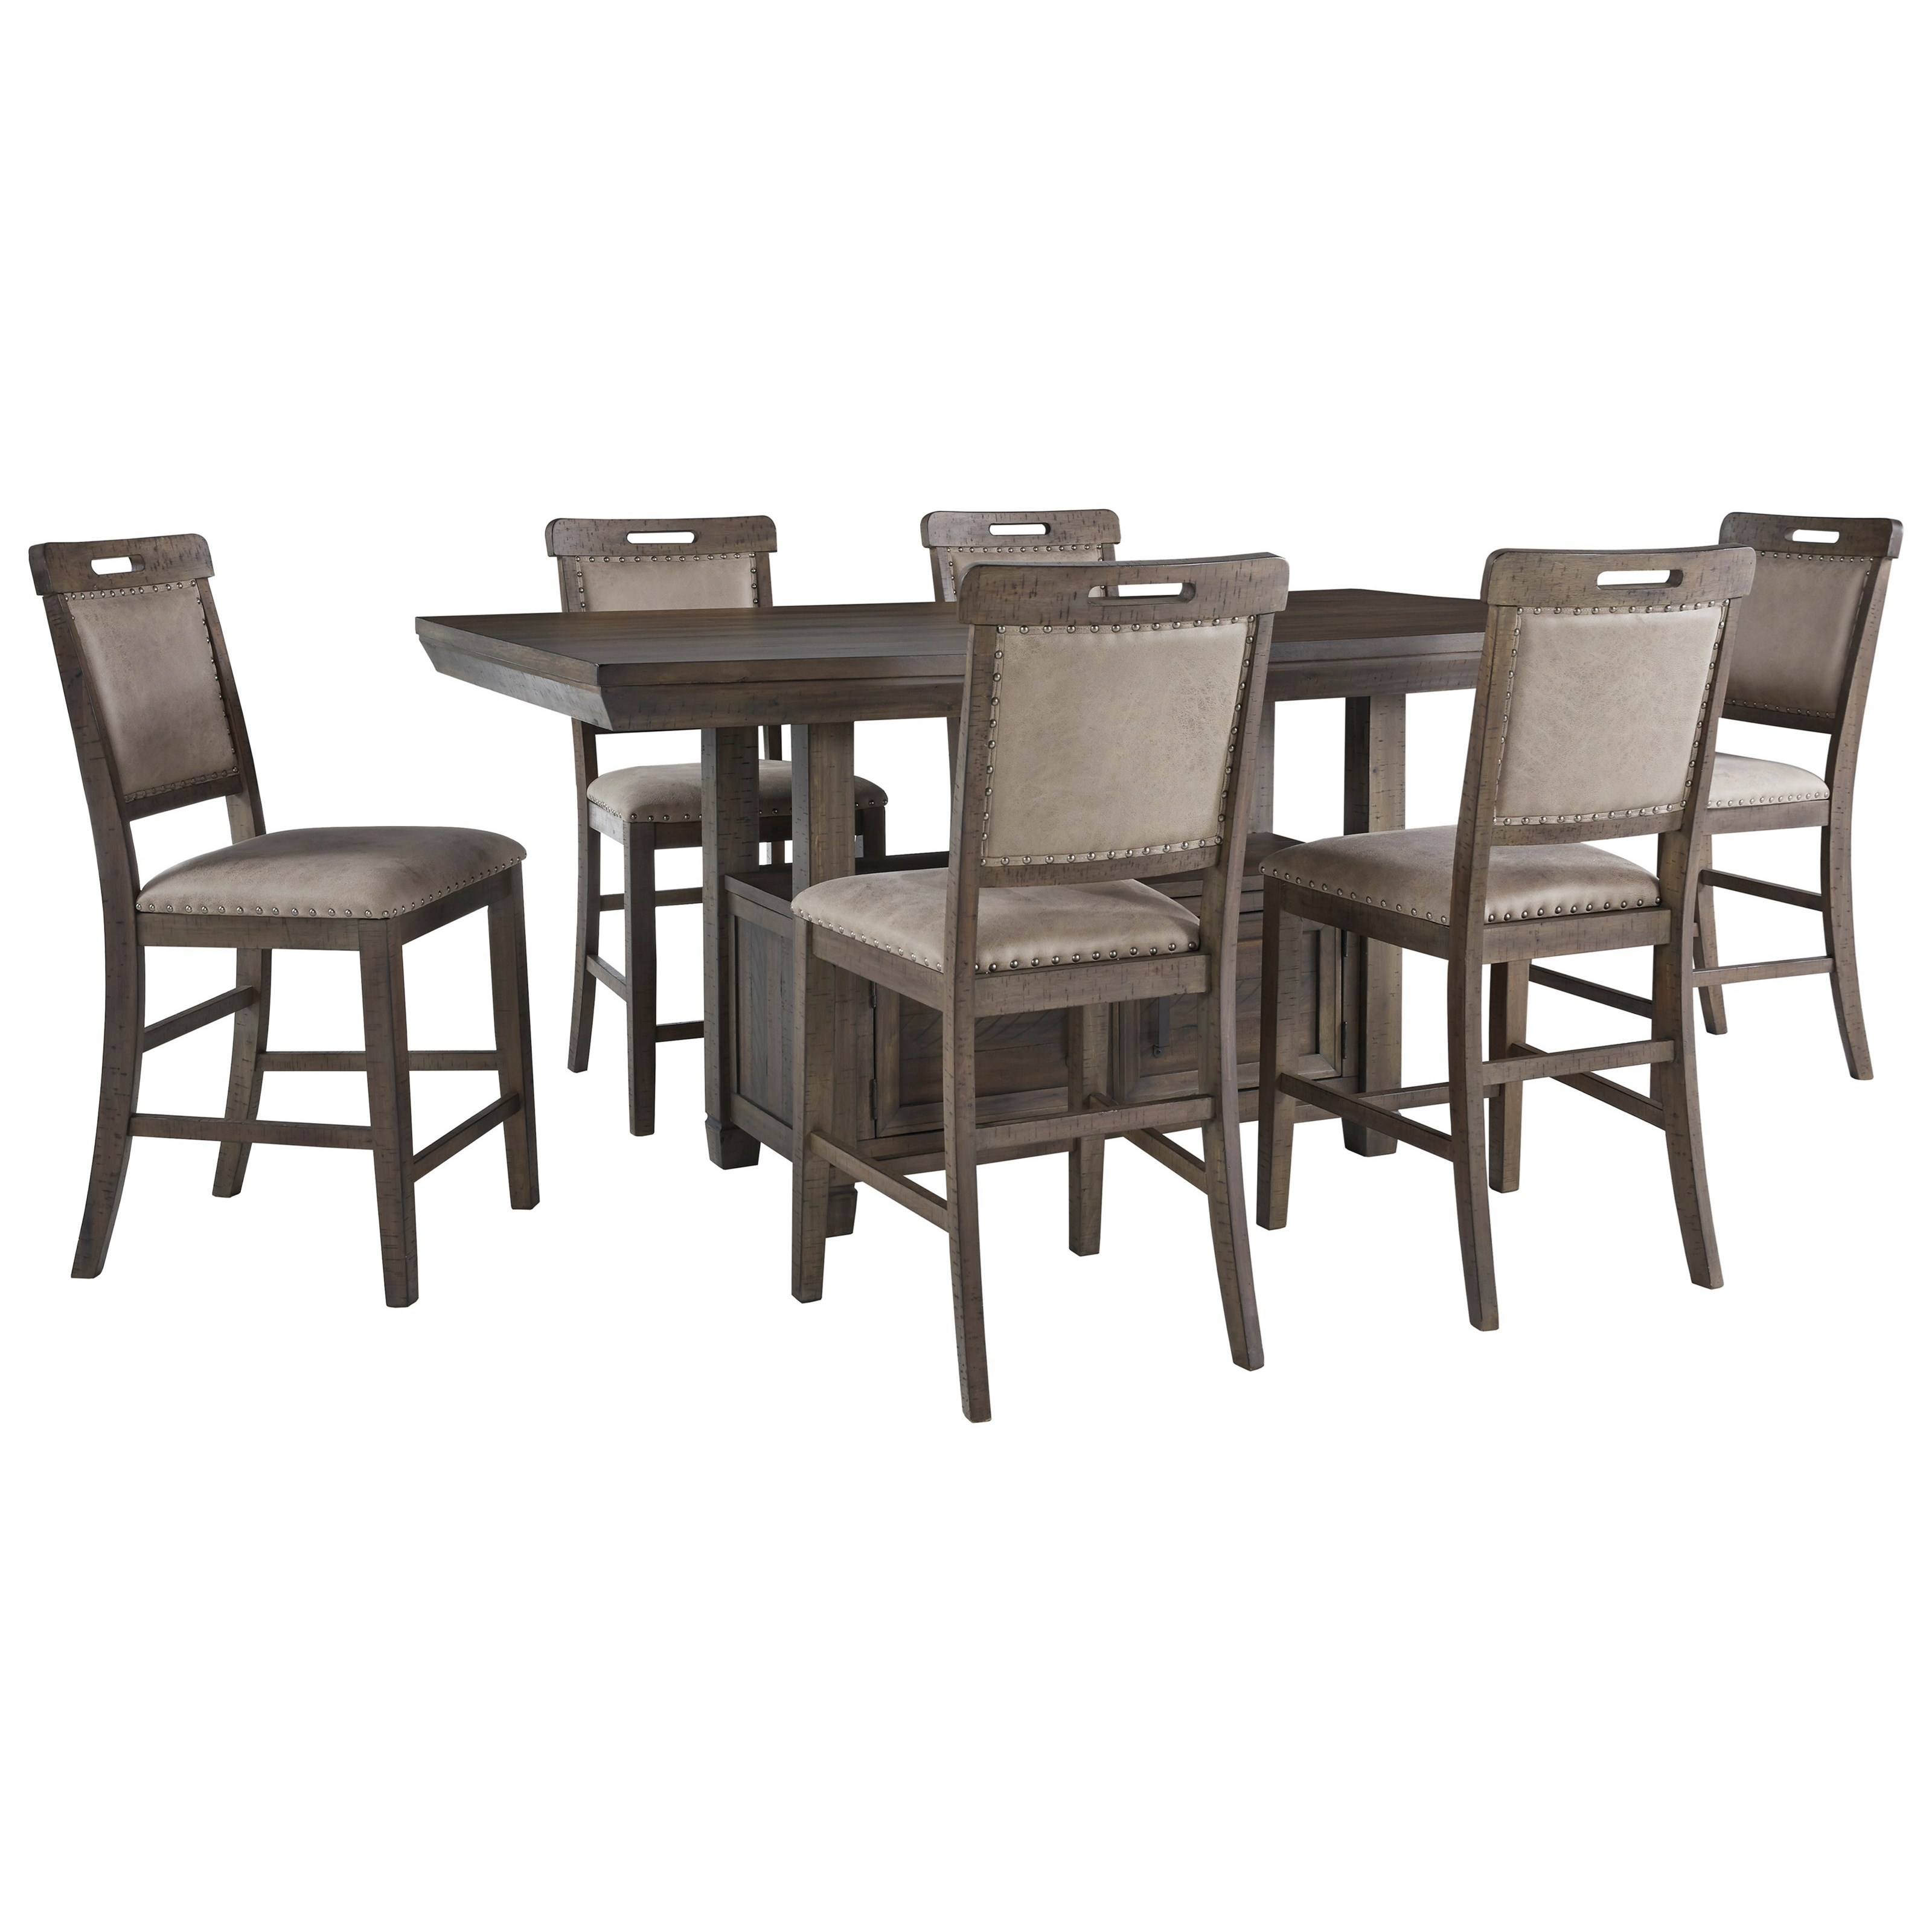 Johurst 7-Piece Counter Height Dining Set by Benchcraft at Household Furniture